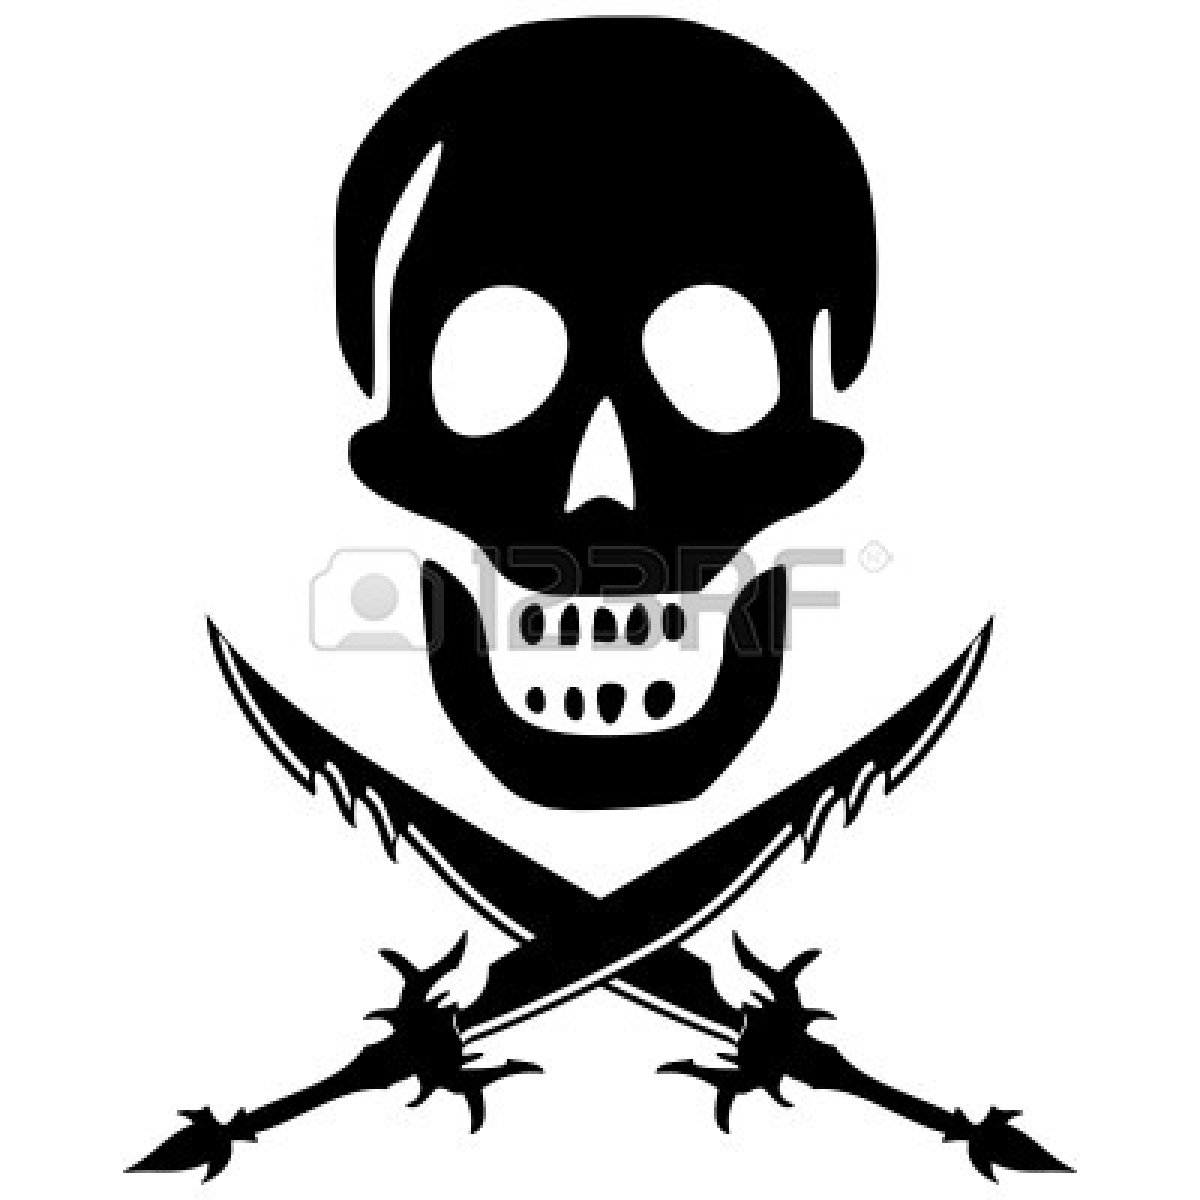 Pirate hat clipart black and white - photo#9